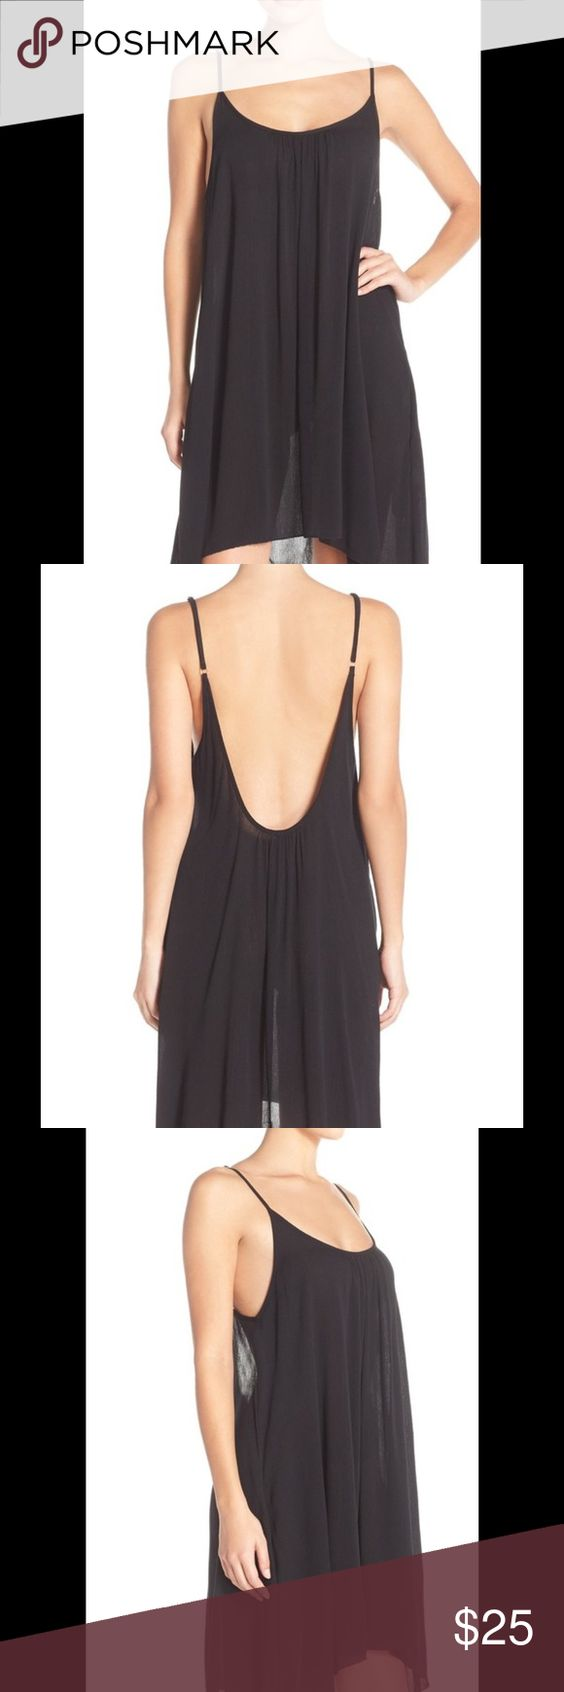 """Black cover up slip dress nordstroms New without tags An airy, lightweight slipdress designed with adjustable spaghetti straps and a low scooped back makes the perfect swimsuit cover-up when headed to and from the pool. 24""""center front length (size Small) Sheer; base layer recommended. Scooped neck. Adjustable spaghetti straps. Unlined. 100% rayon. Hand wash cold, line dry. By Elan; made in the USA. Elan Dresses"""